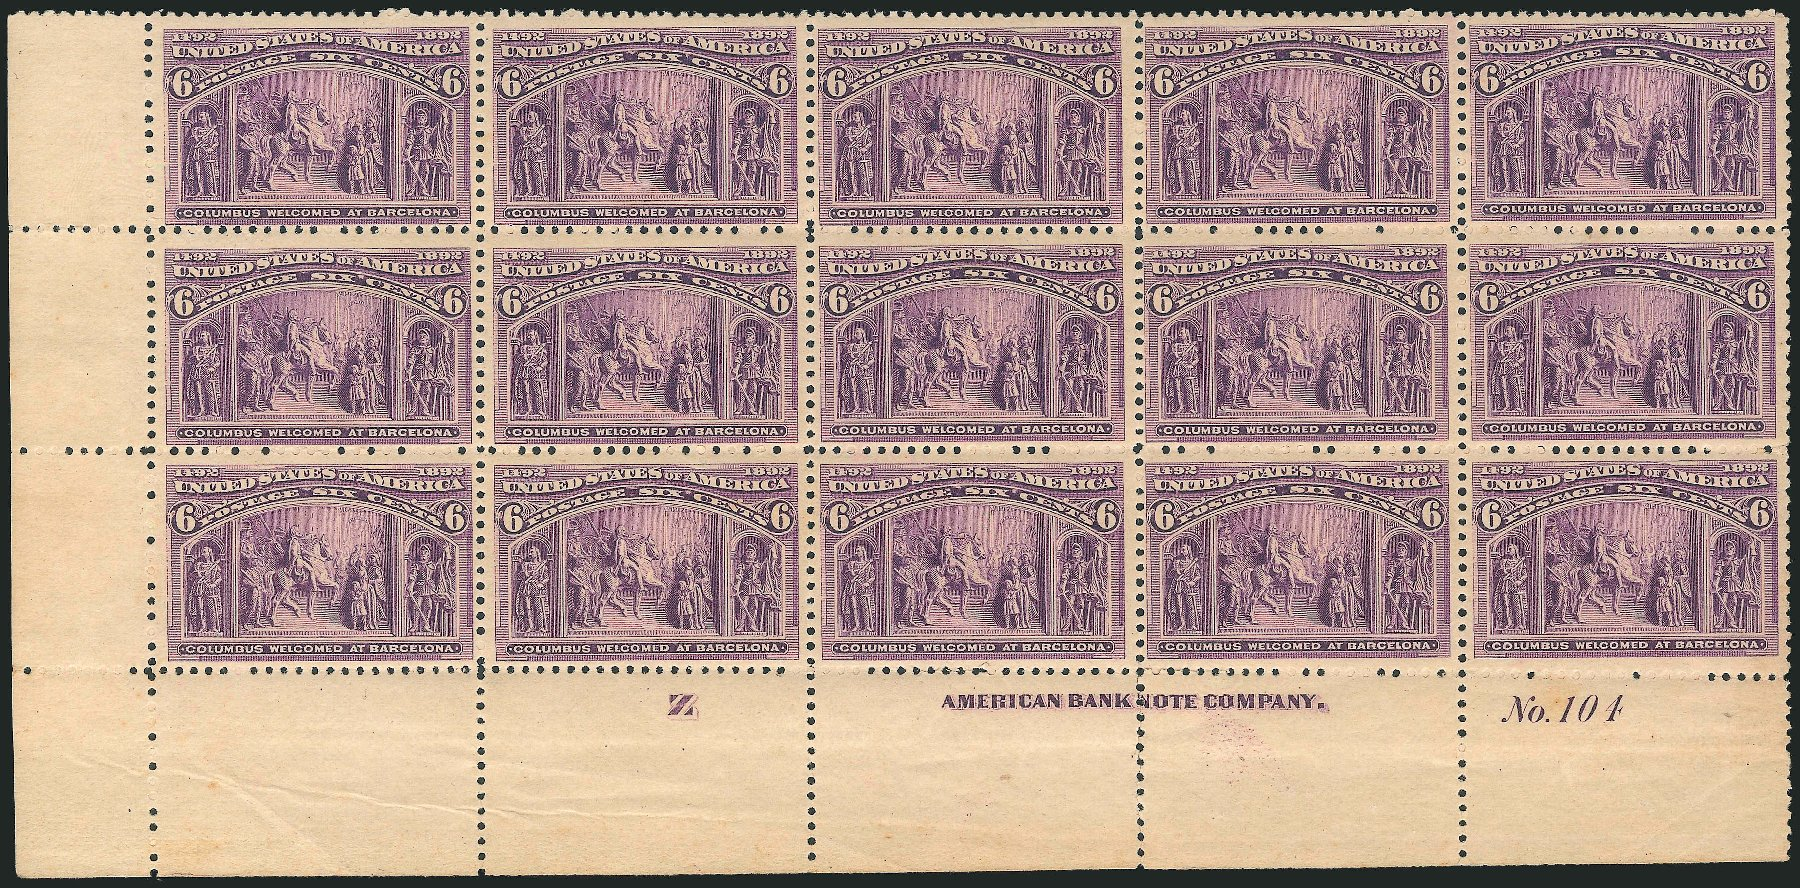 US Stamp Price Scott #235 - 1893 6c Columbian Exposition. Robert Siegel Auction Galleries, Jun 2015, Sale 1100, Lot 46